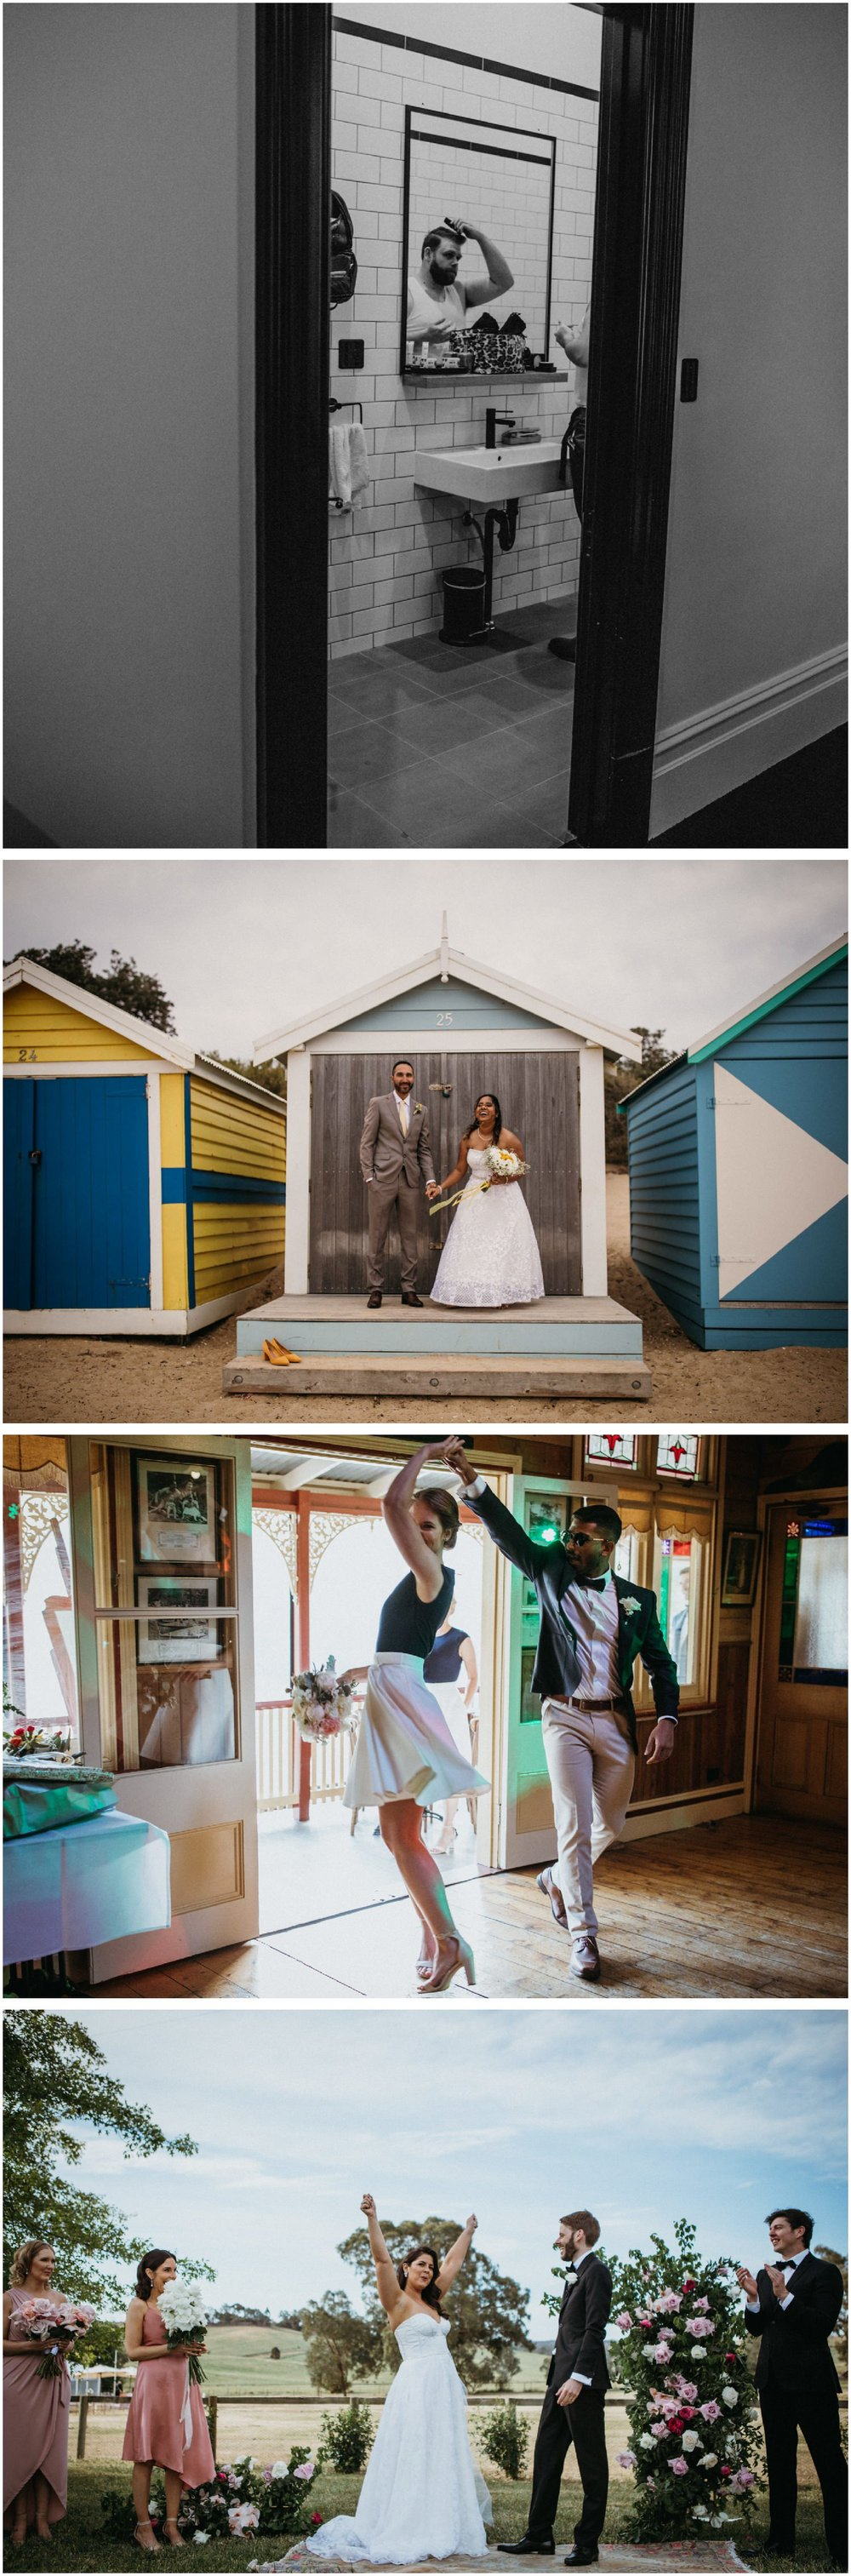 Melbourne Wedding Photographer - 2018 in review -185A2711.jpg